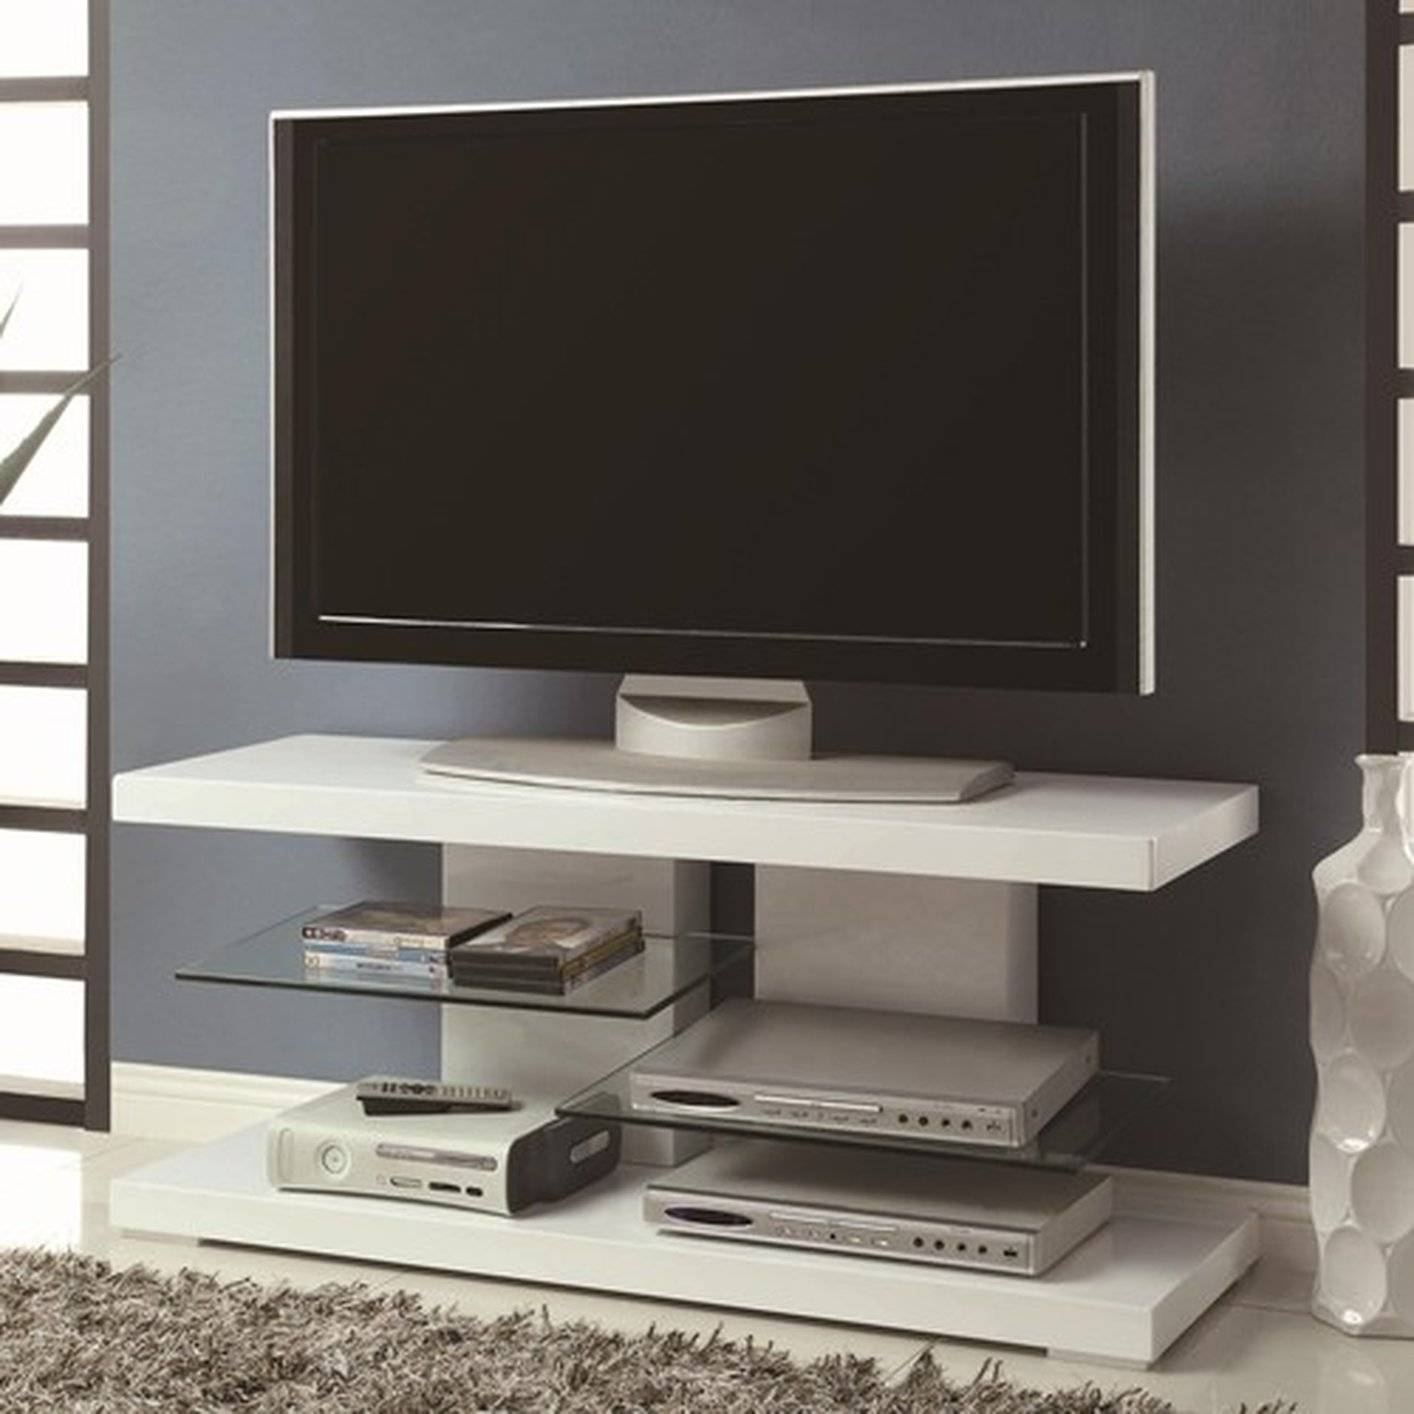 White Glass Tv Stand - Steal-A-Sofa Furniture Outlet Los Angeles Ca in Modern Glass Tv Stands (Image 13 of 15)